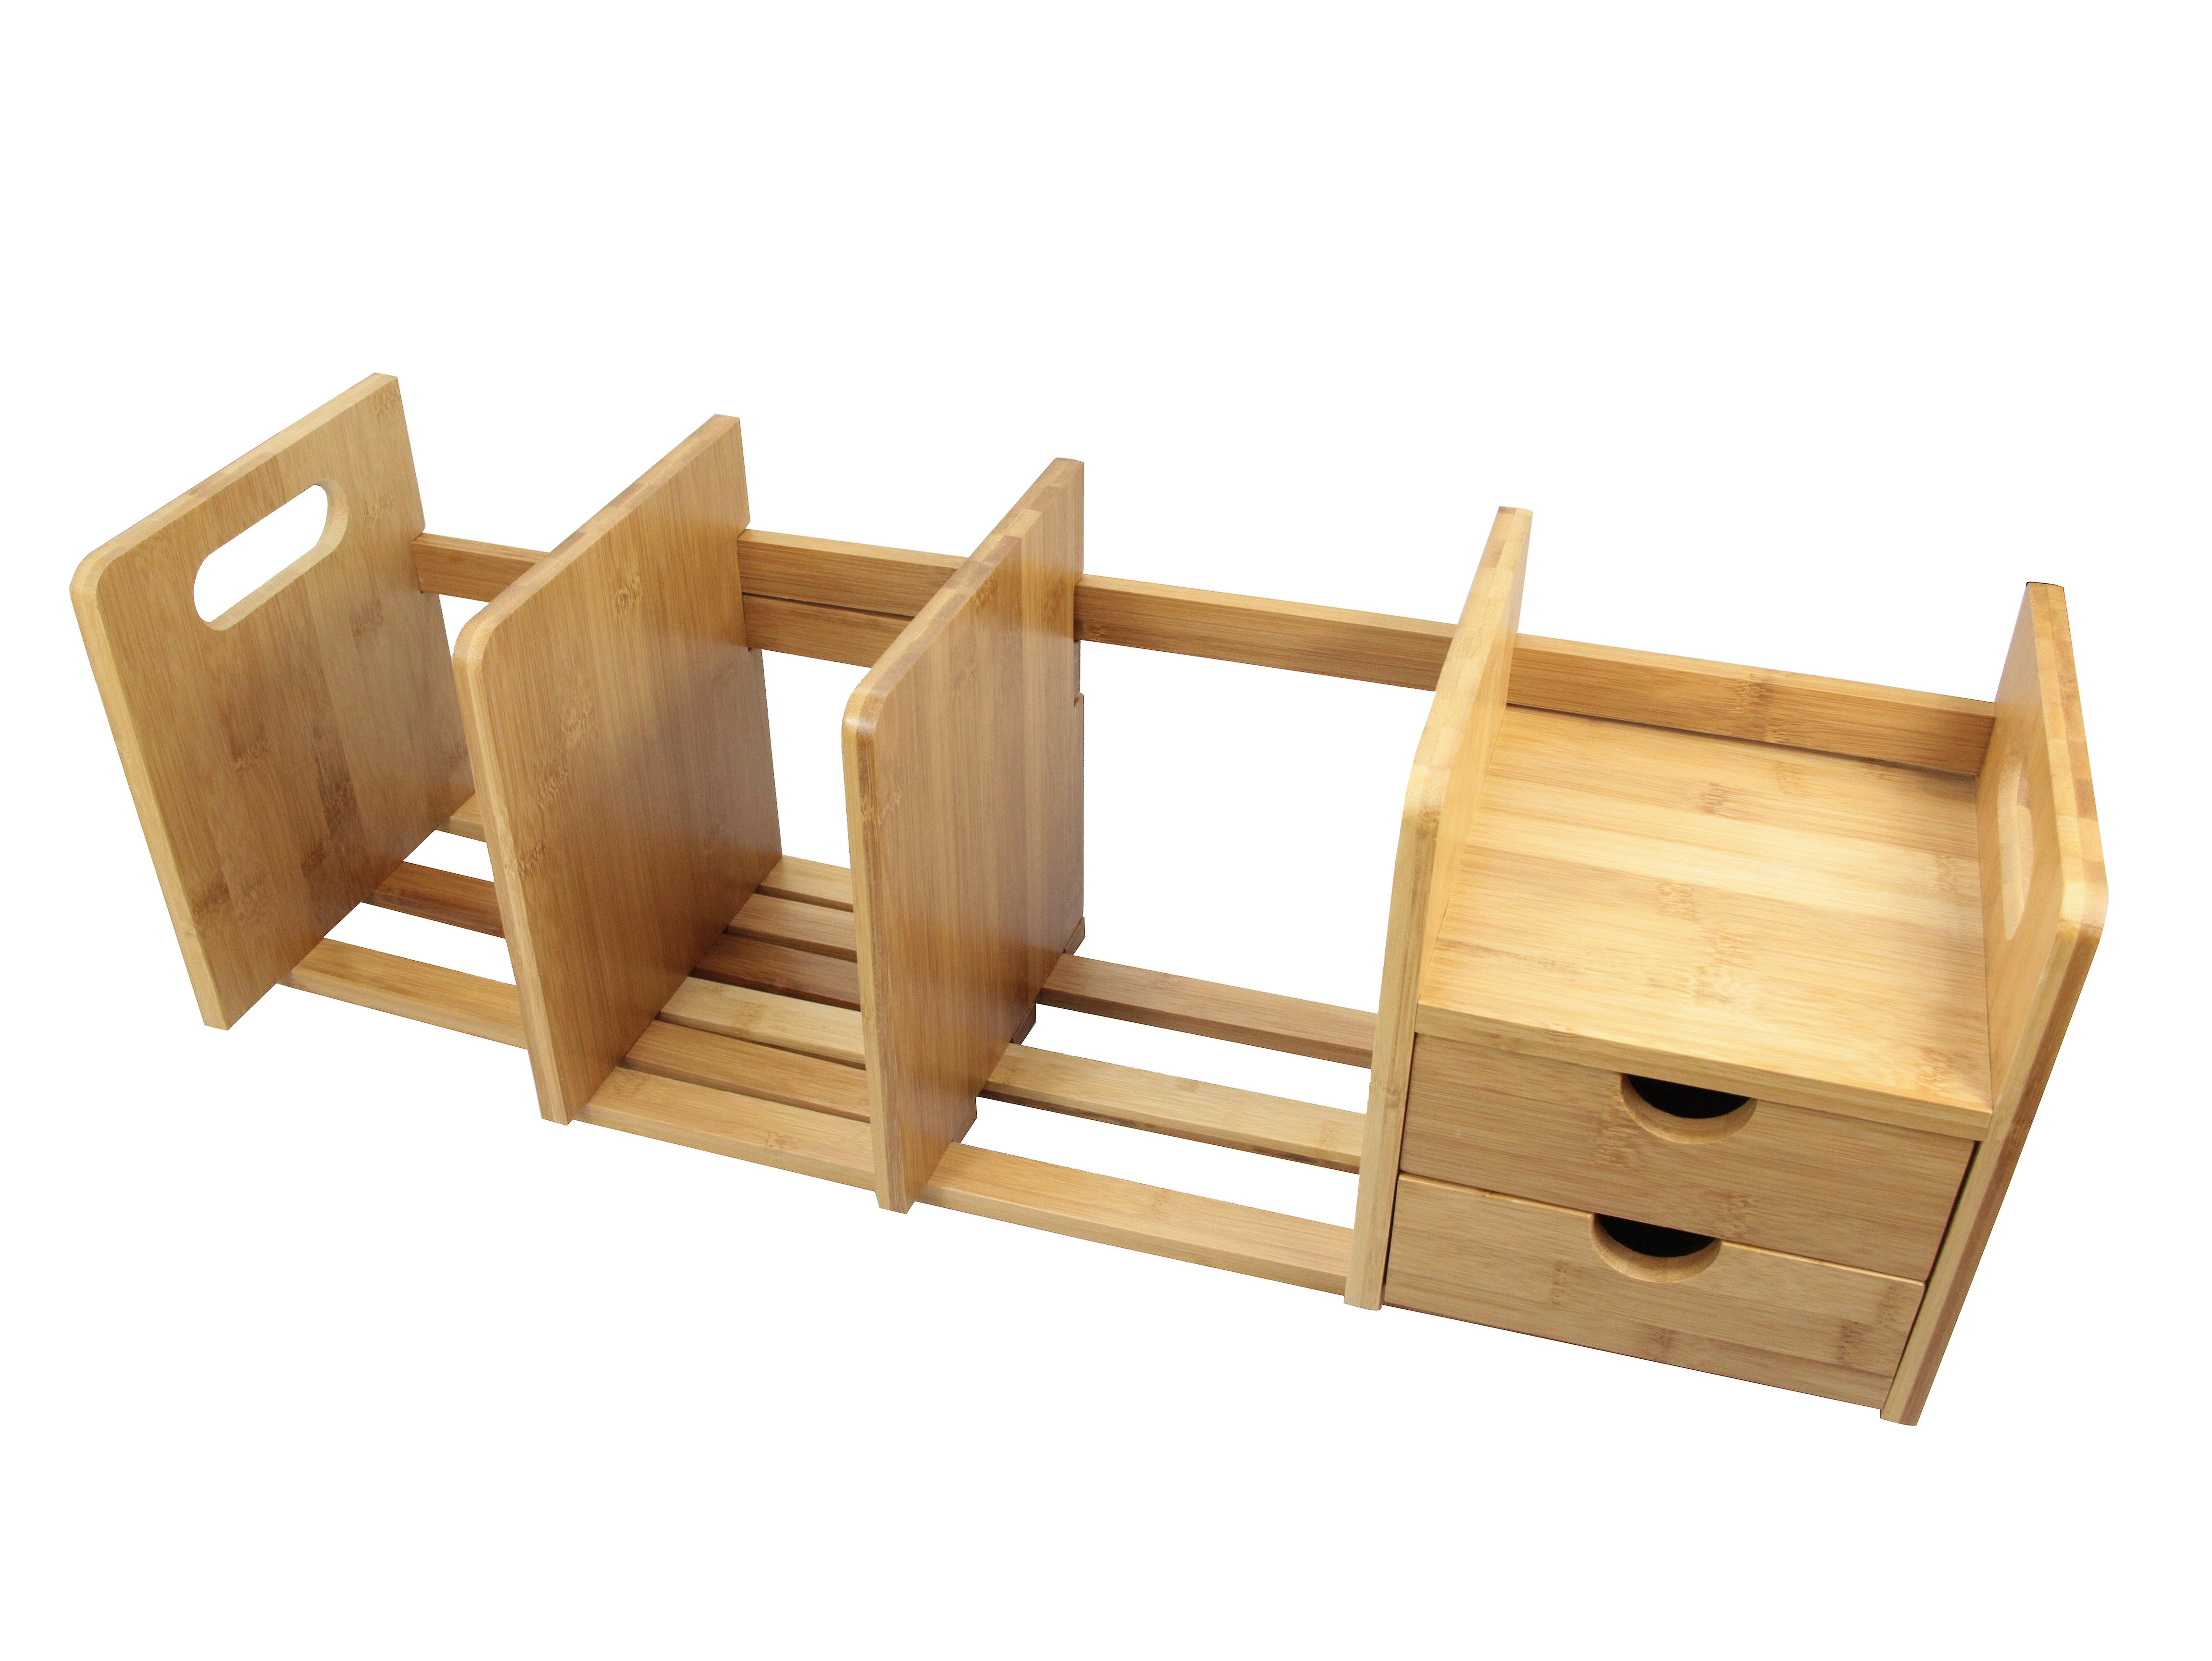 Woodquail Bamboo Desktop Expandable Adjustable Bookshelf with Drawers Desk Tidy Organiser